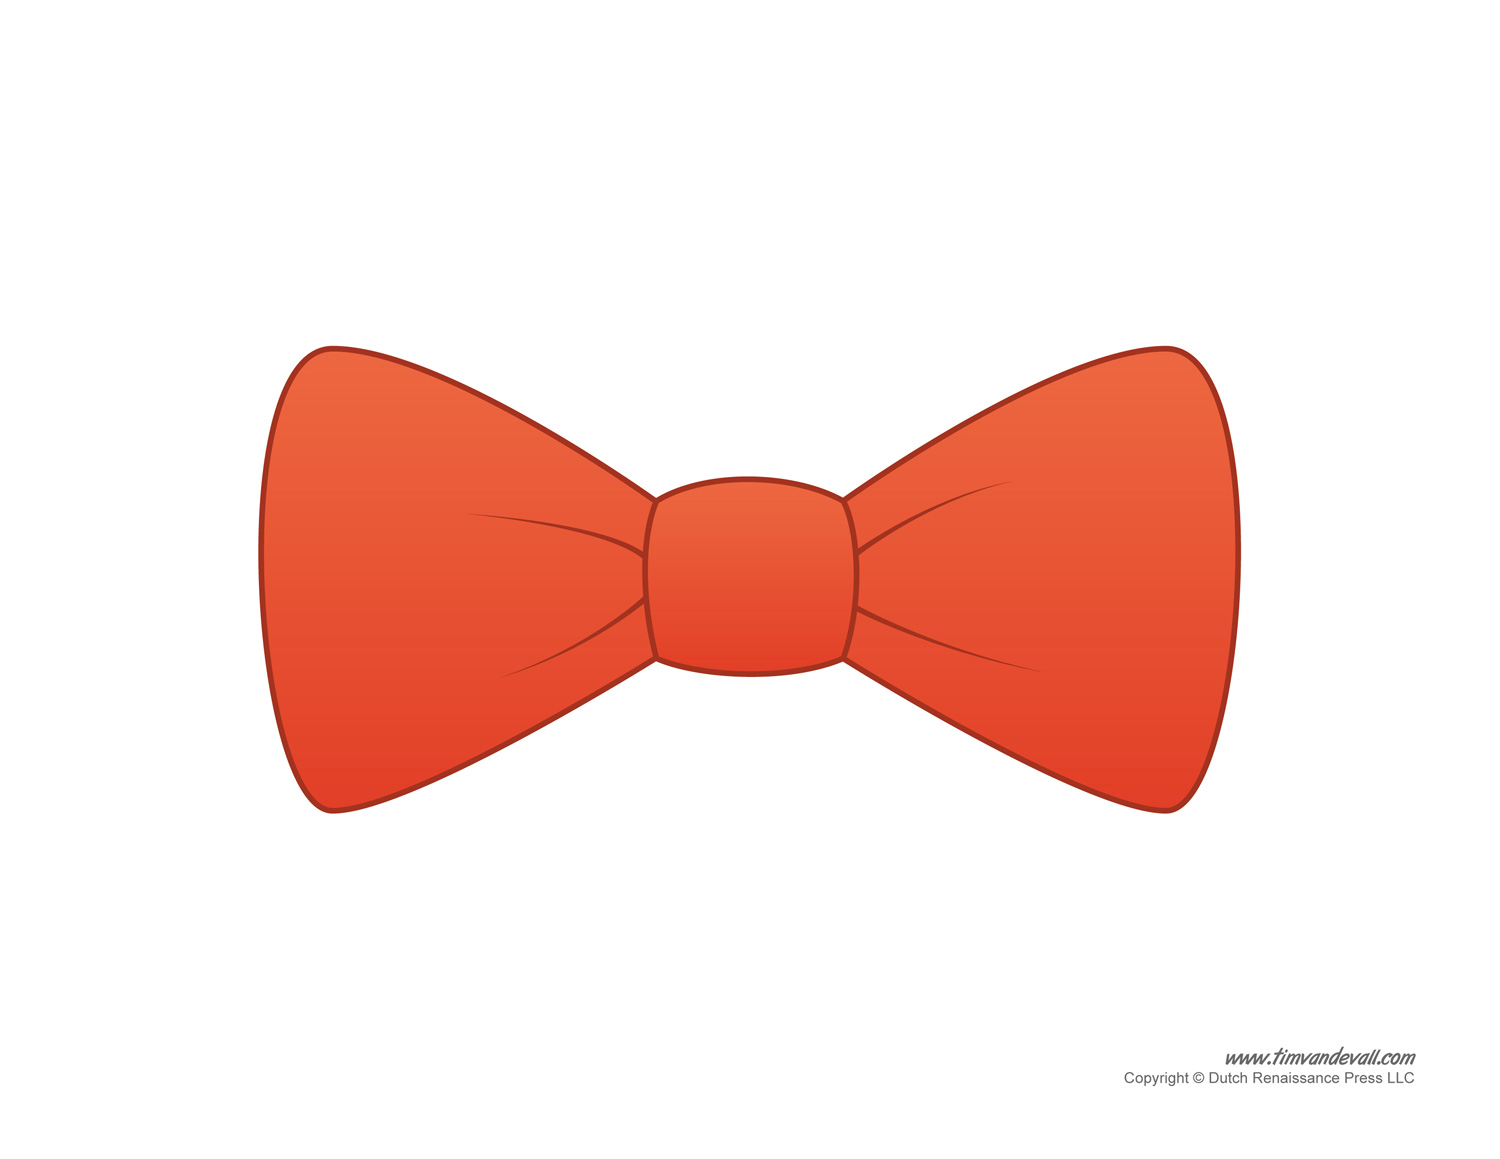 photo about Bow Tie Printable referred to as Paper Bow Tie Templates Bow Tie Printables